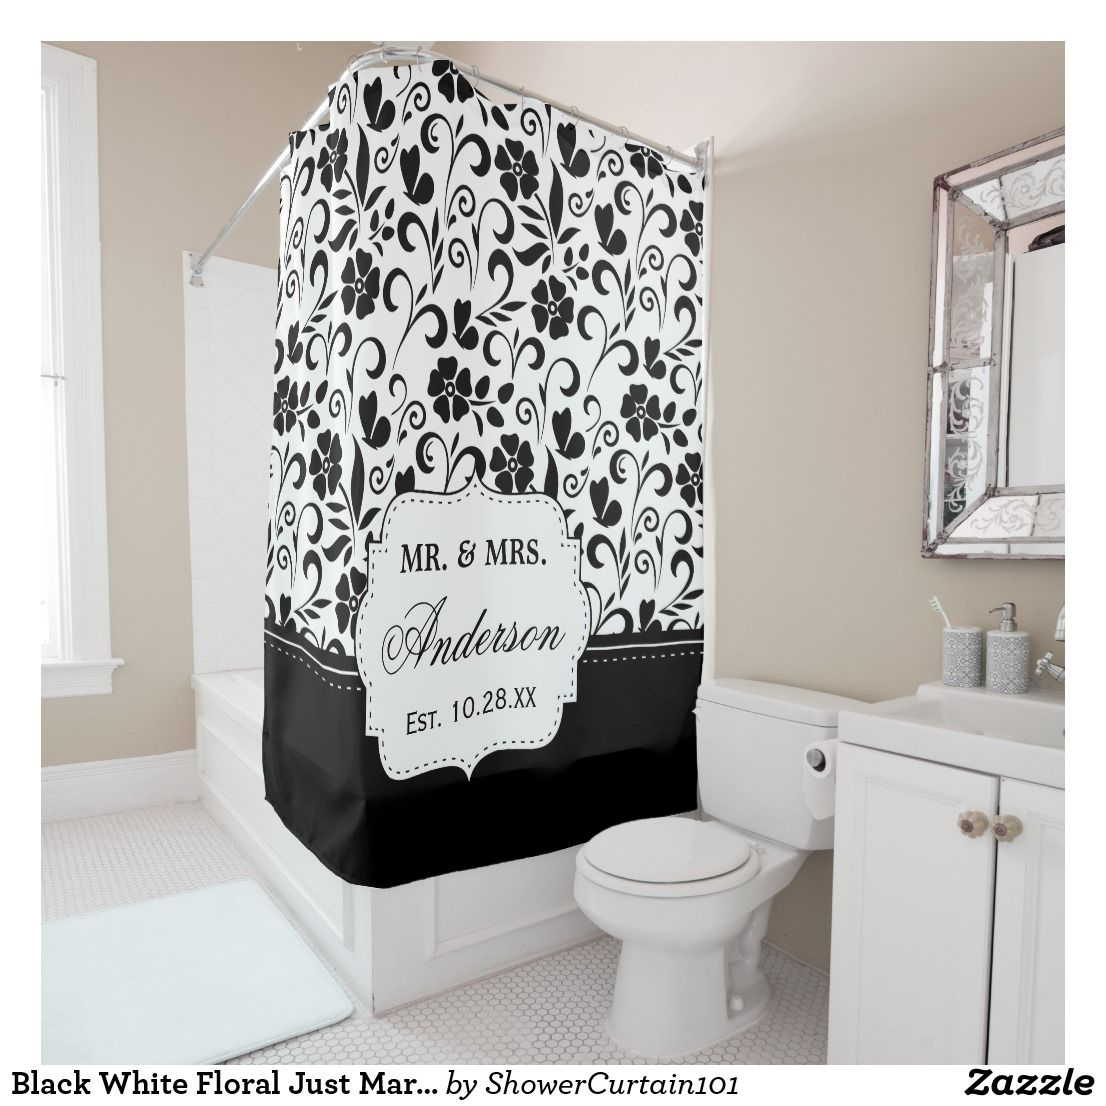 Black White Floral Just Married Wedding Date Shower Curtain | Bath ...